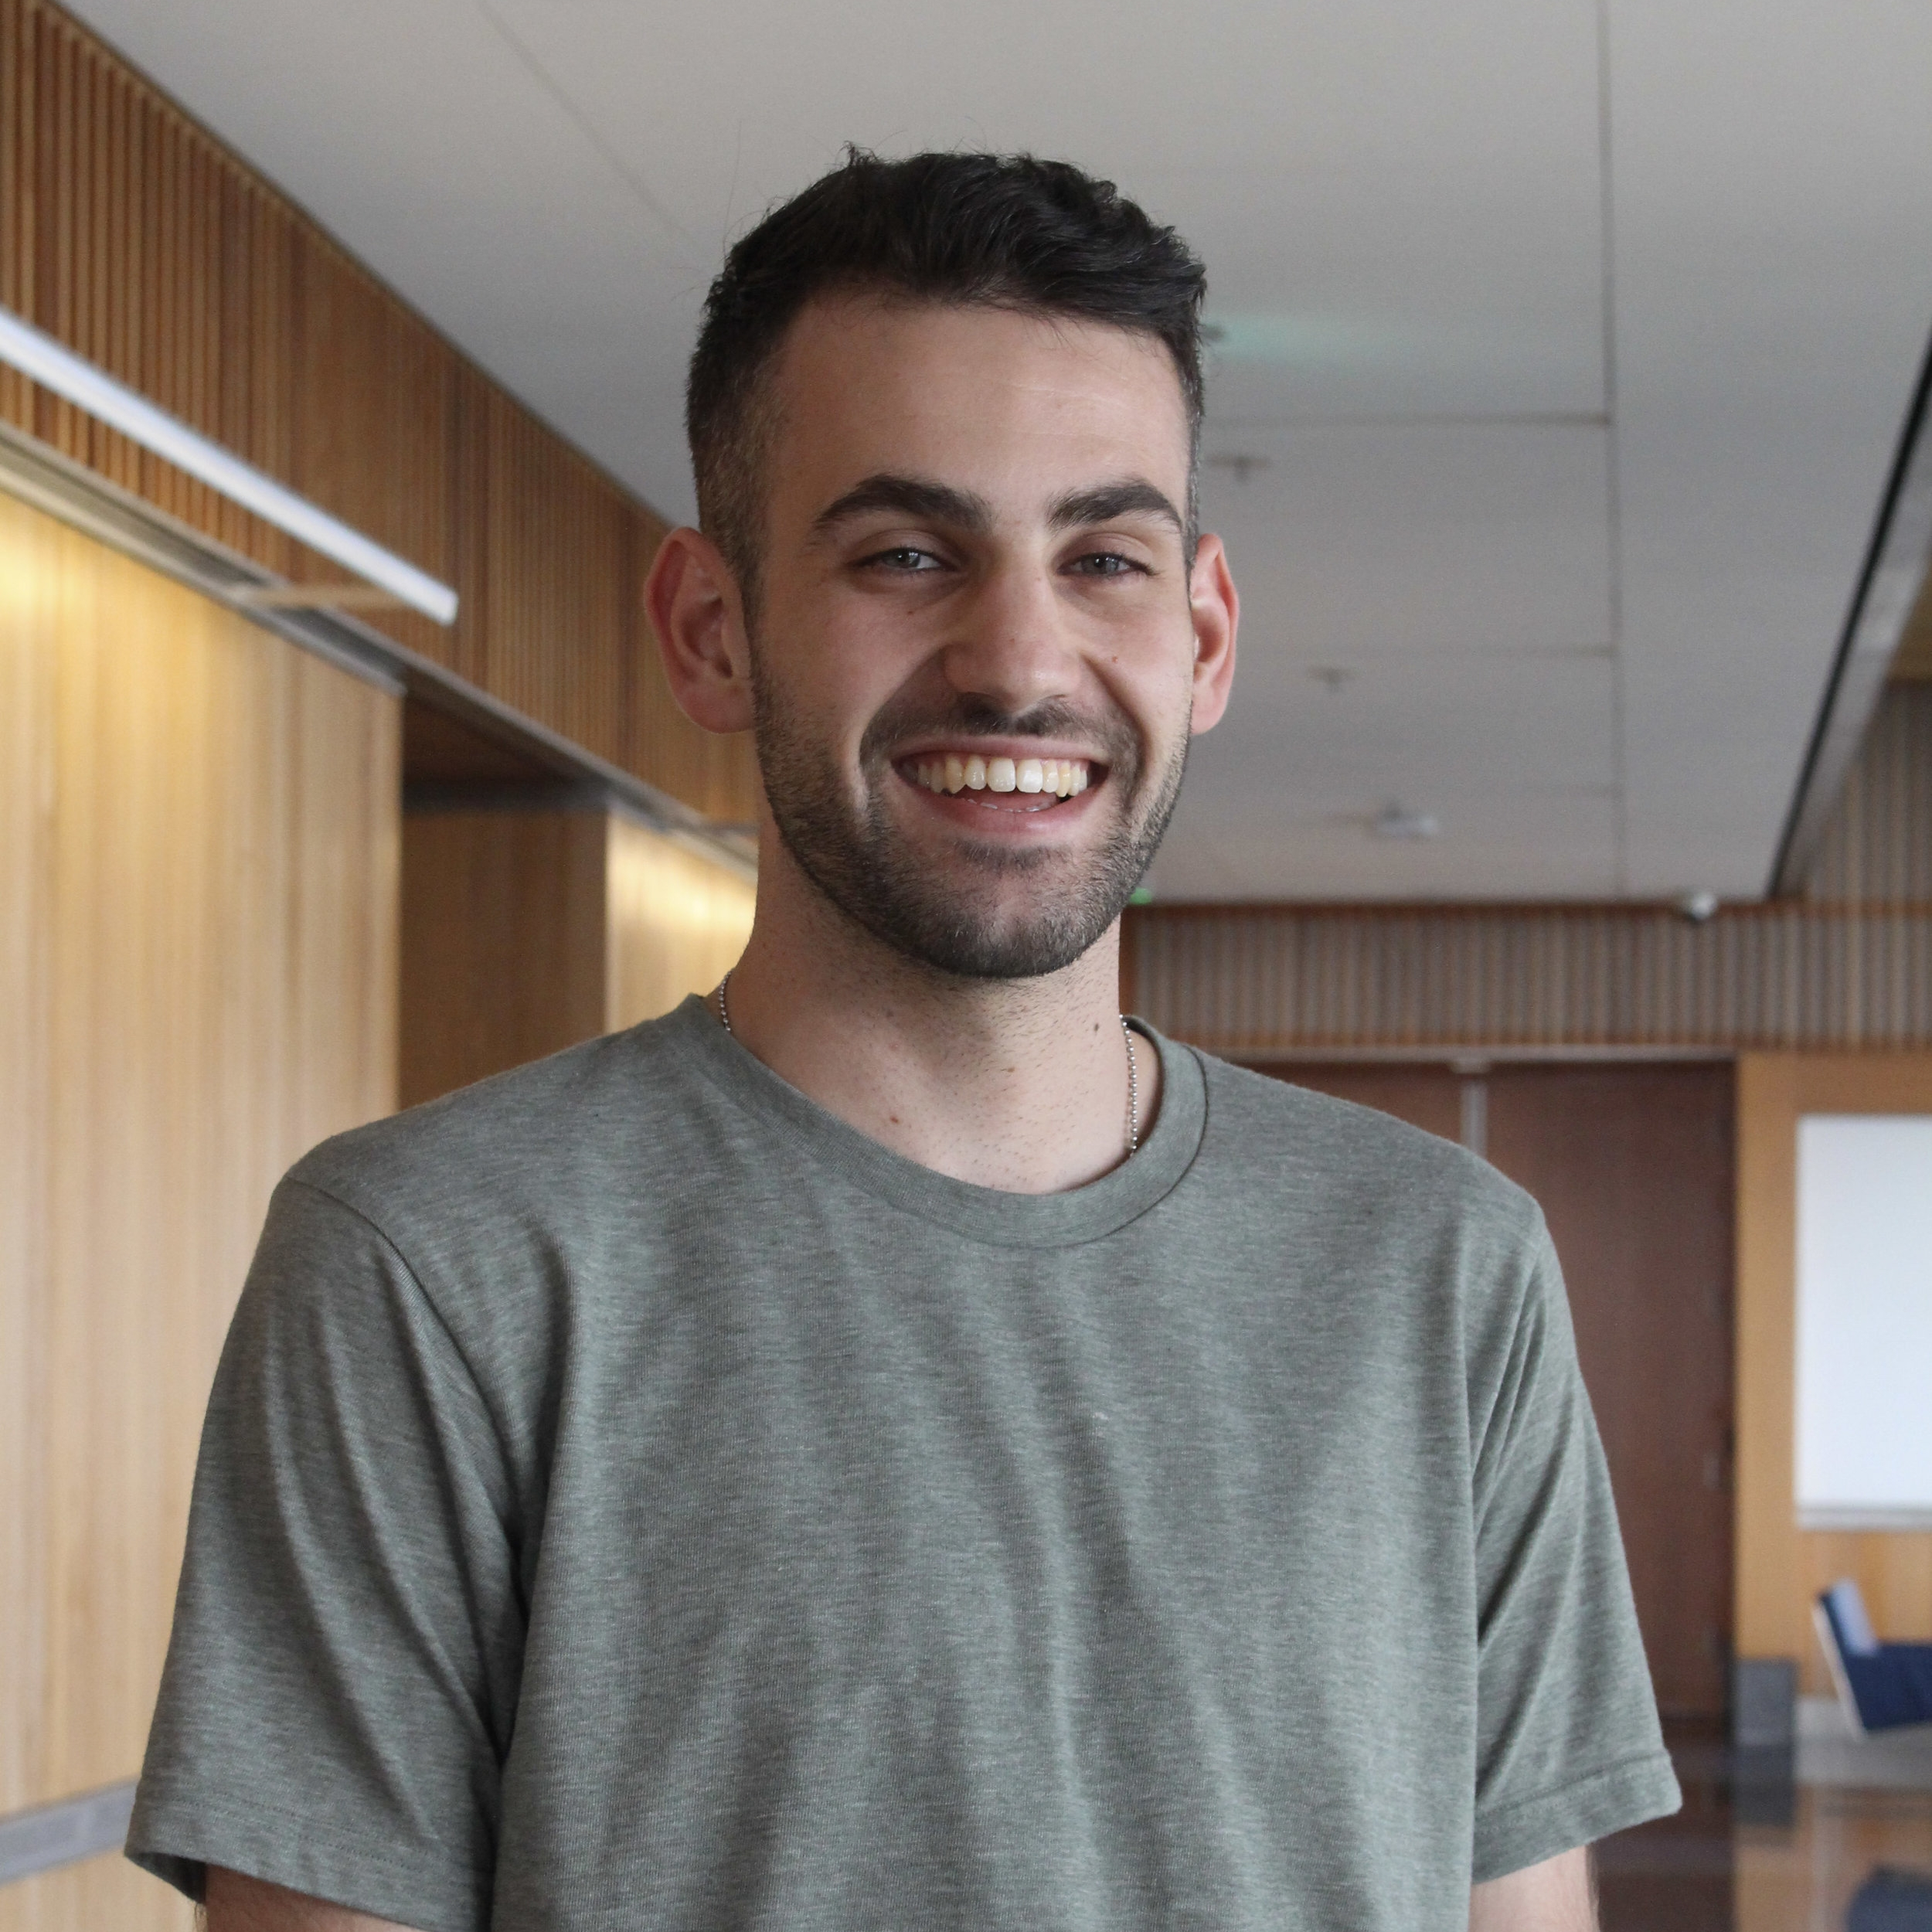 I am two years out of Brandeis University, majoring in Health: Science, Society, and Policy.  I am currently helping out the immunology team, running assays to analyze dengue virus and the neutralizing antibodies involved. I am also particularly interested in bioinformatics and public health.  In my free time, I am an avid follower of soccer and basketball, primarily Everton FC, the best team in England. I am an avid runner, hiker, camper, and biker, pretty much anything outdoor and a part time philosopher.